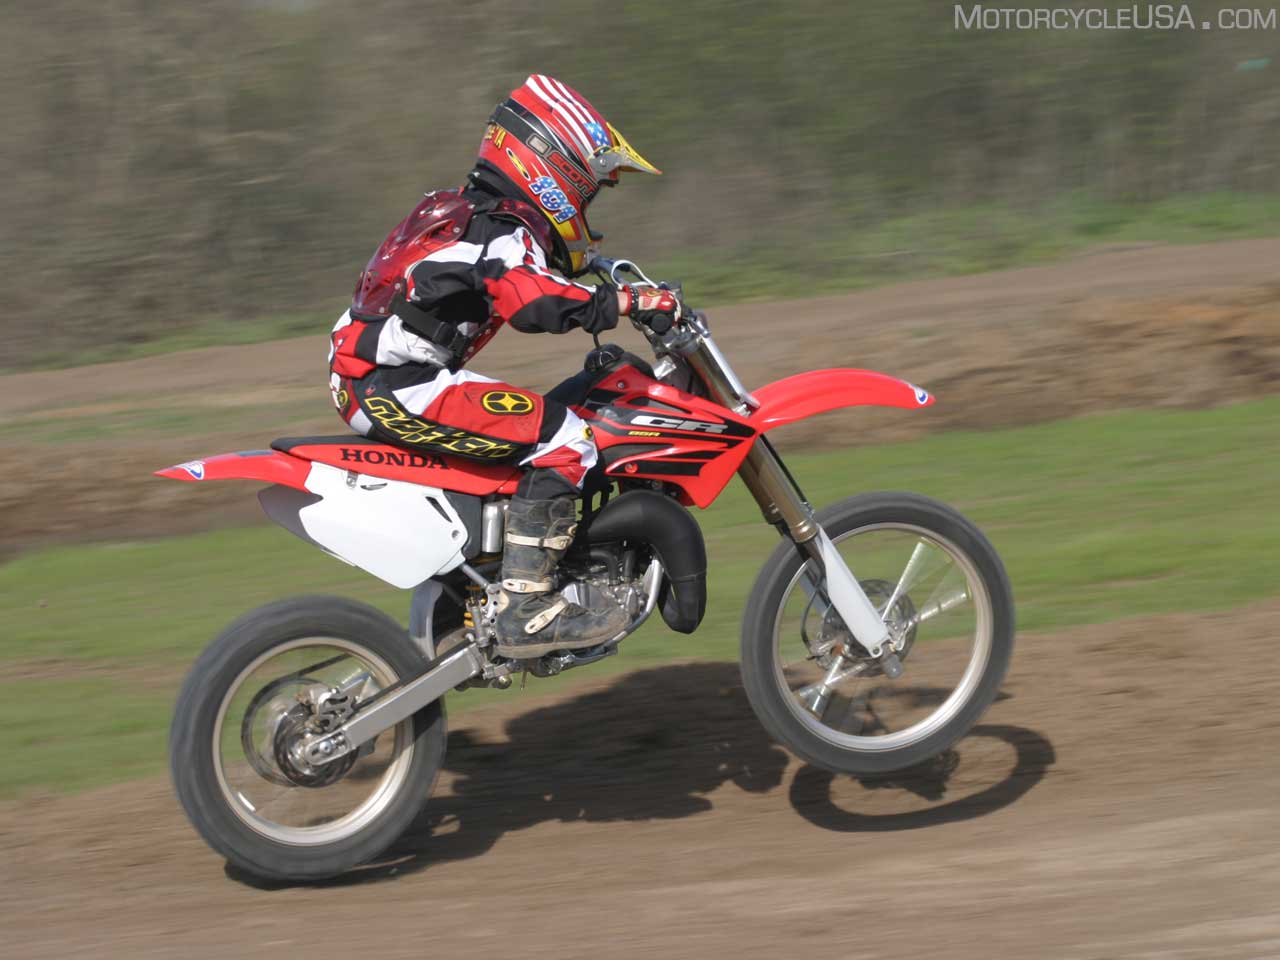 Back Download Honda CR 85 R picture # 6, size 1280x960 Next